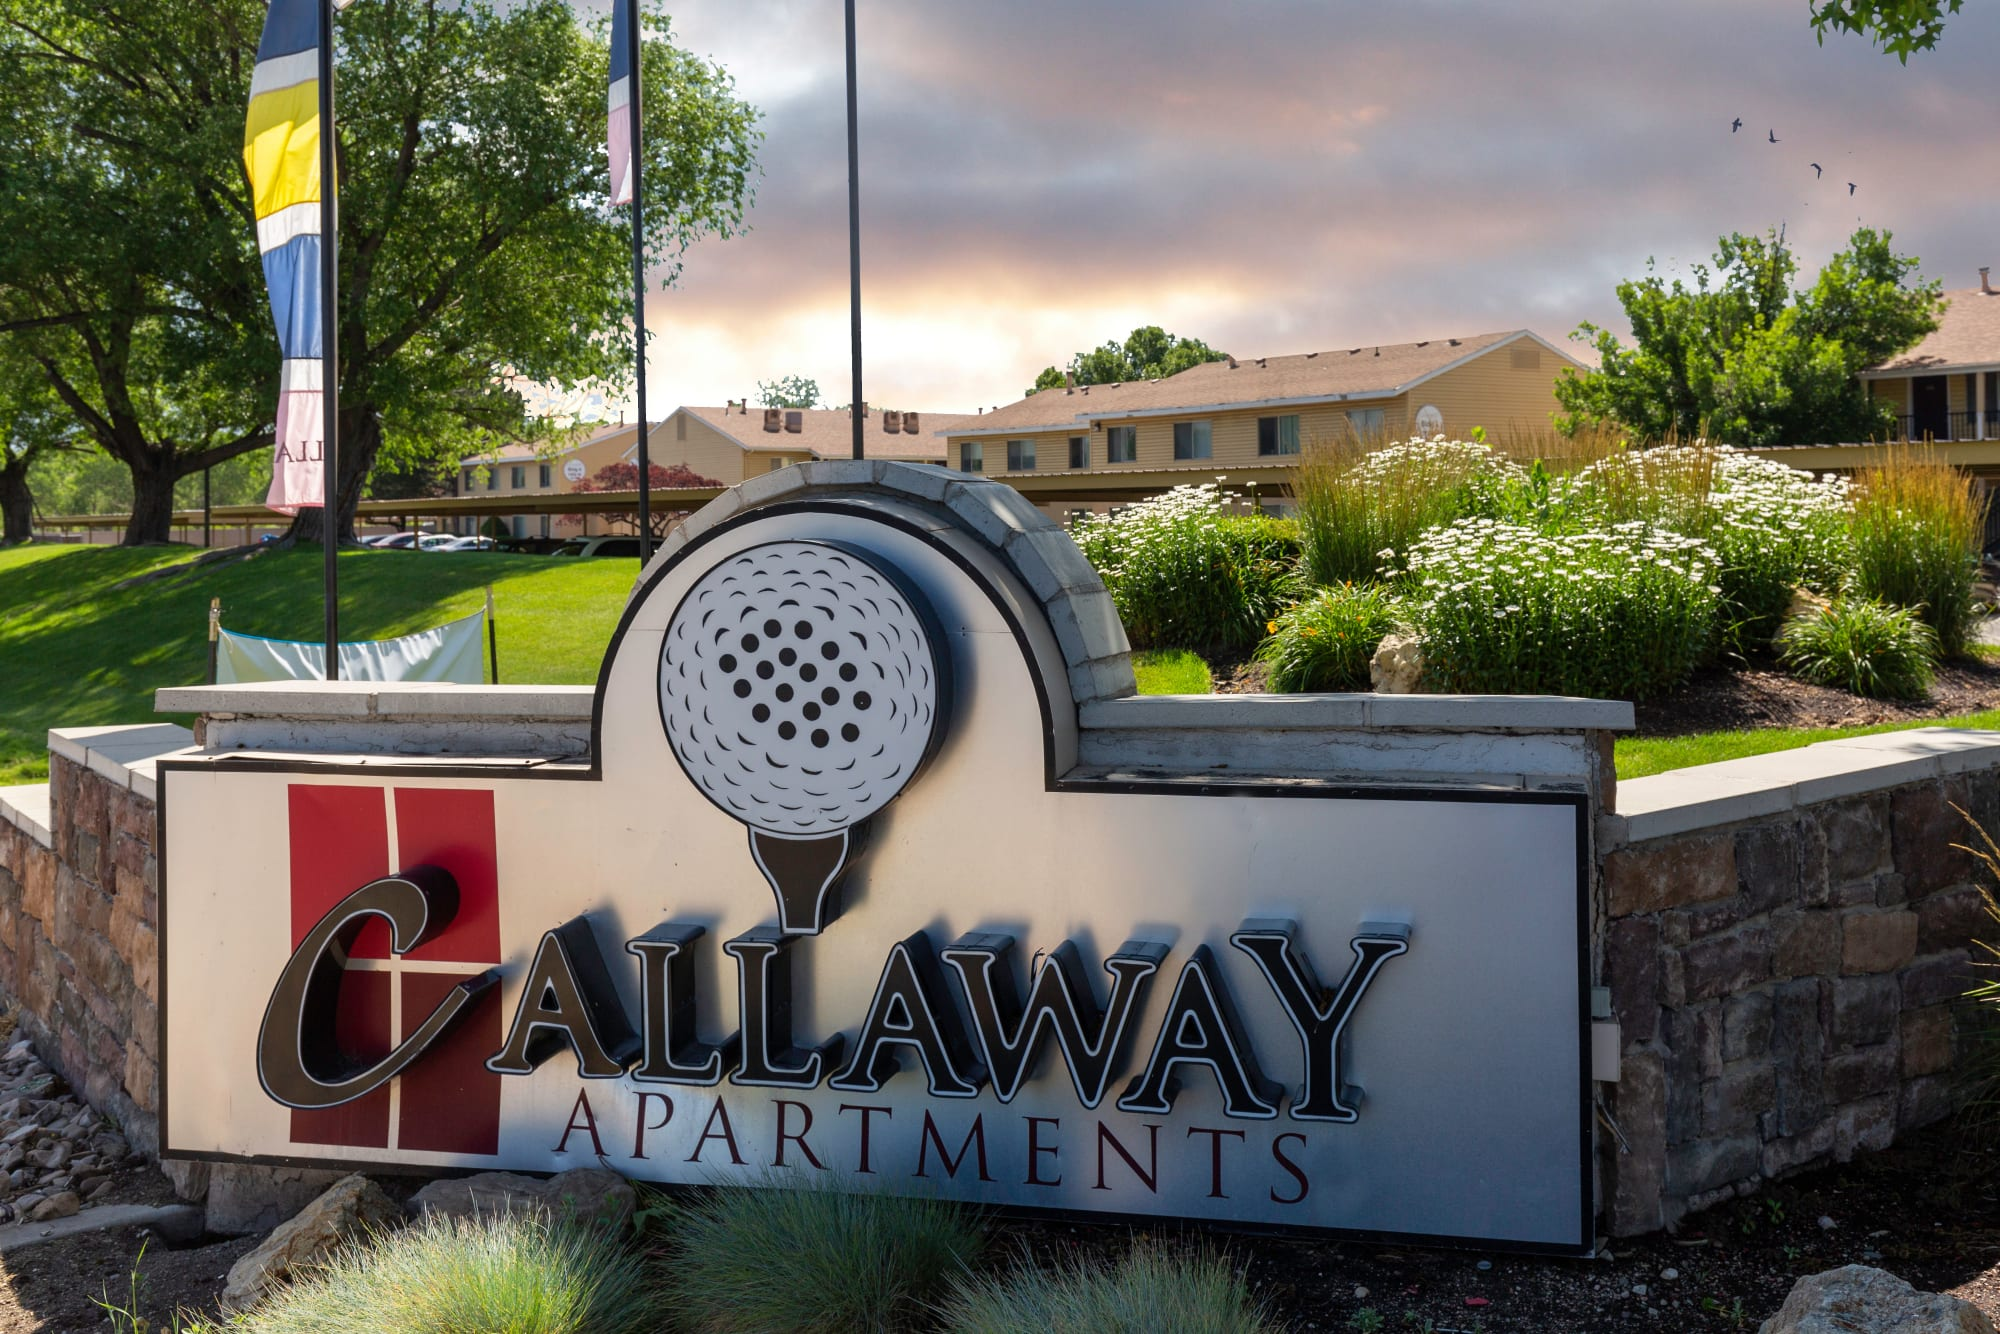 The monument sign in front of Callaway Apartments in Taylorsville, Utah